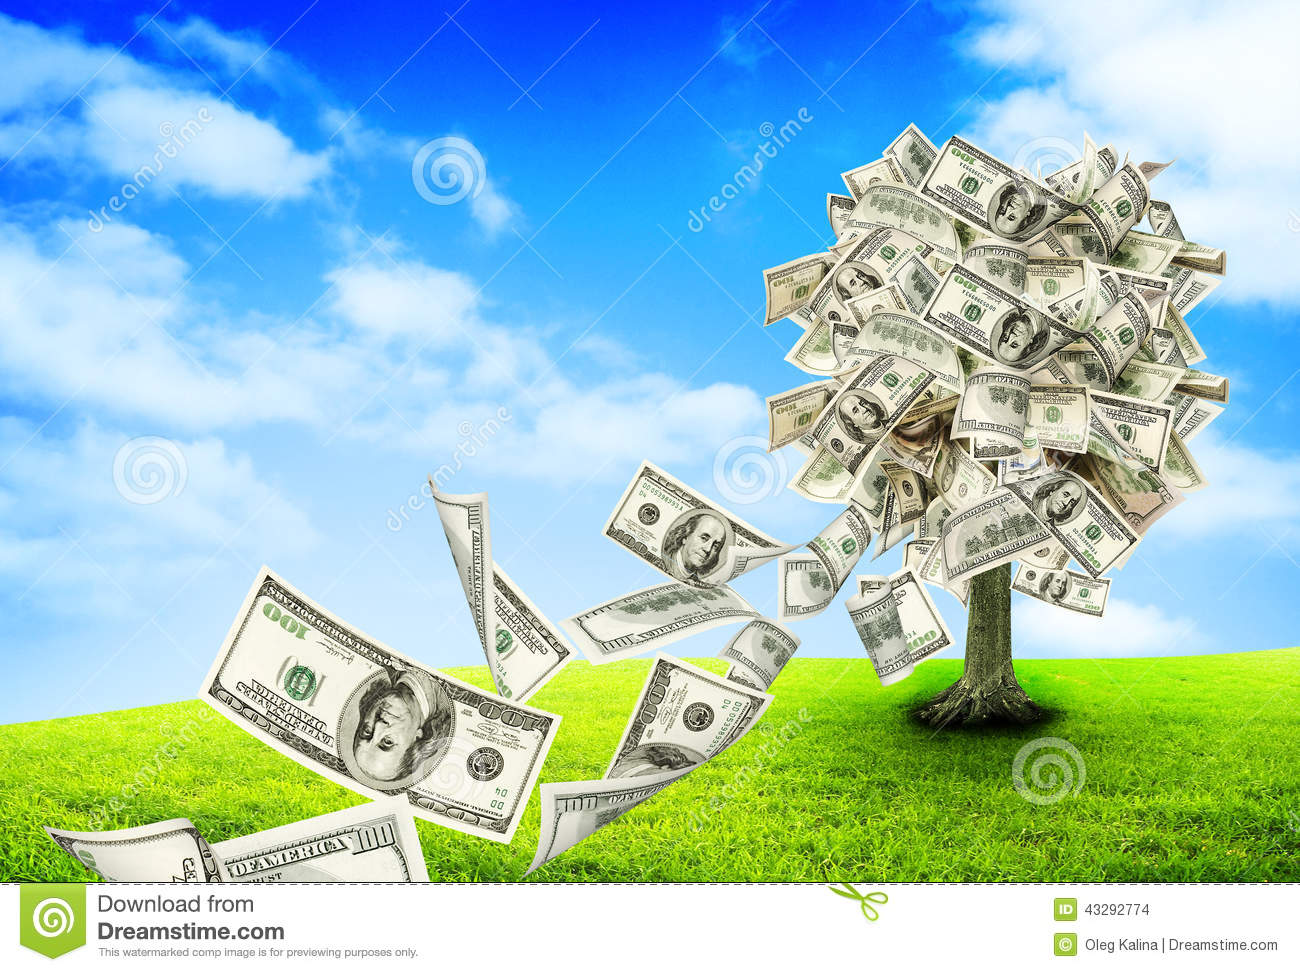 36 842 Money Tree Photos Free Royalty Free Stock Photos From Dreamstime